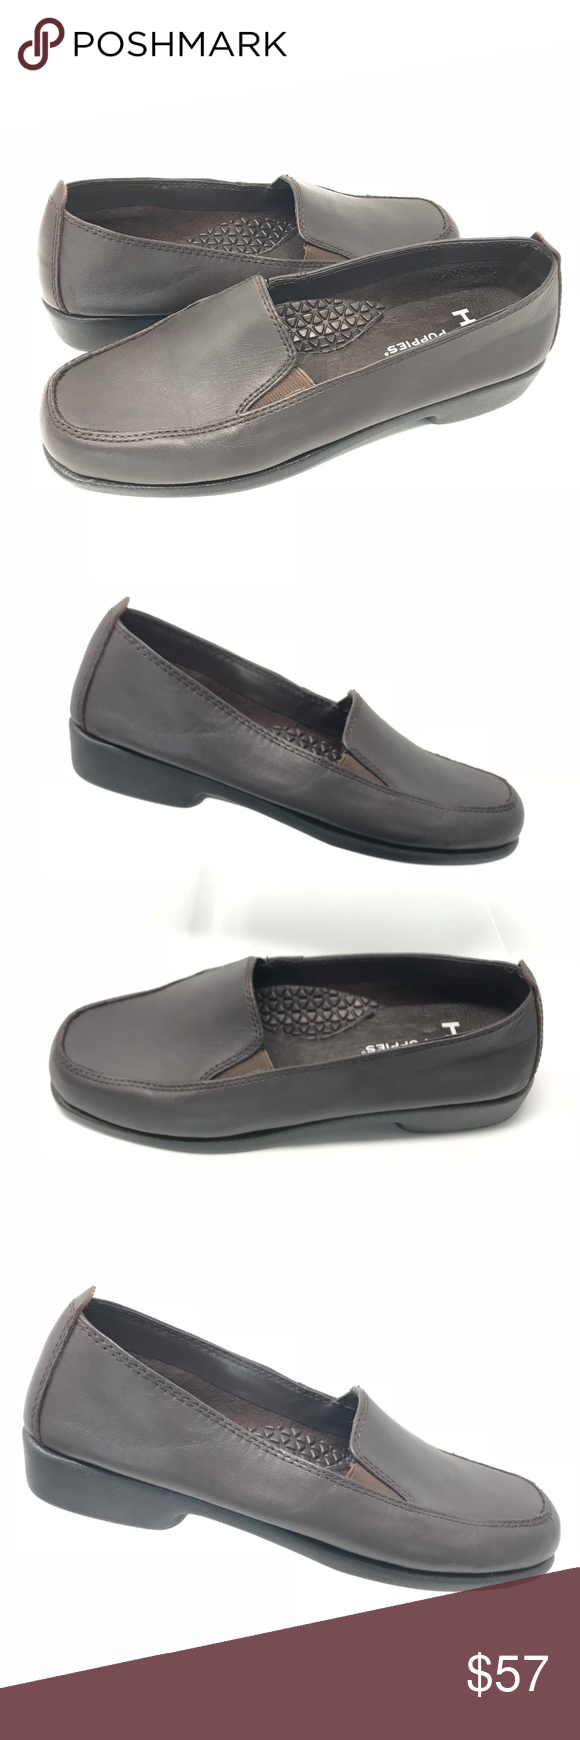 Hush Puppies Heaven Brown Slip On Loafer Hush Puppies